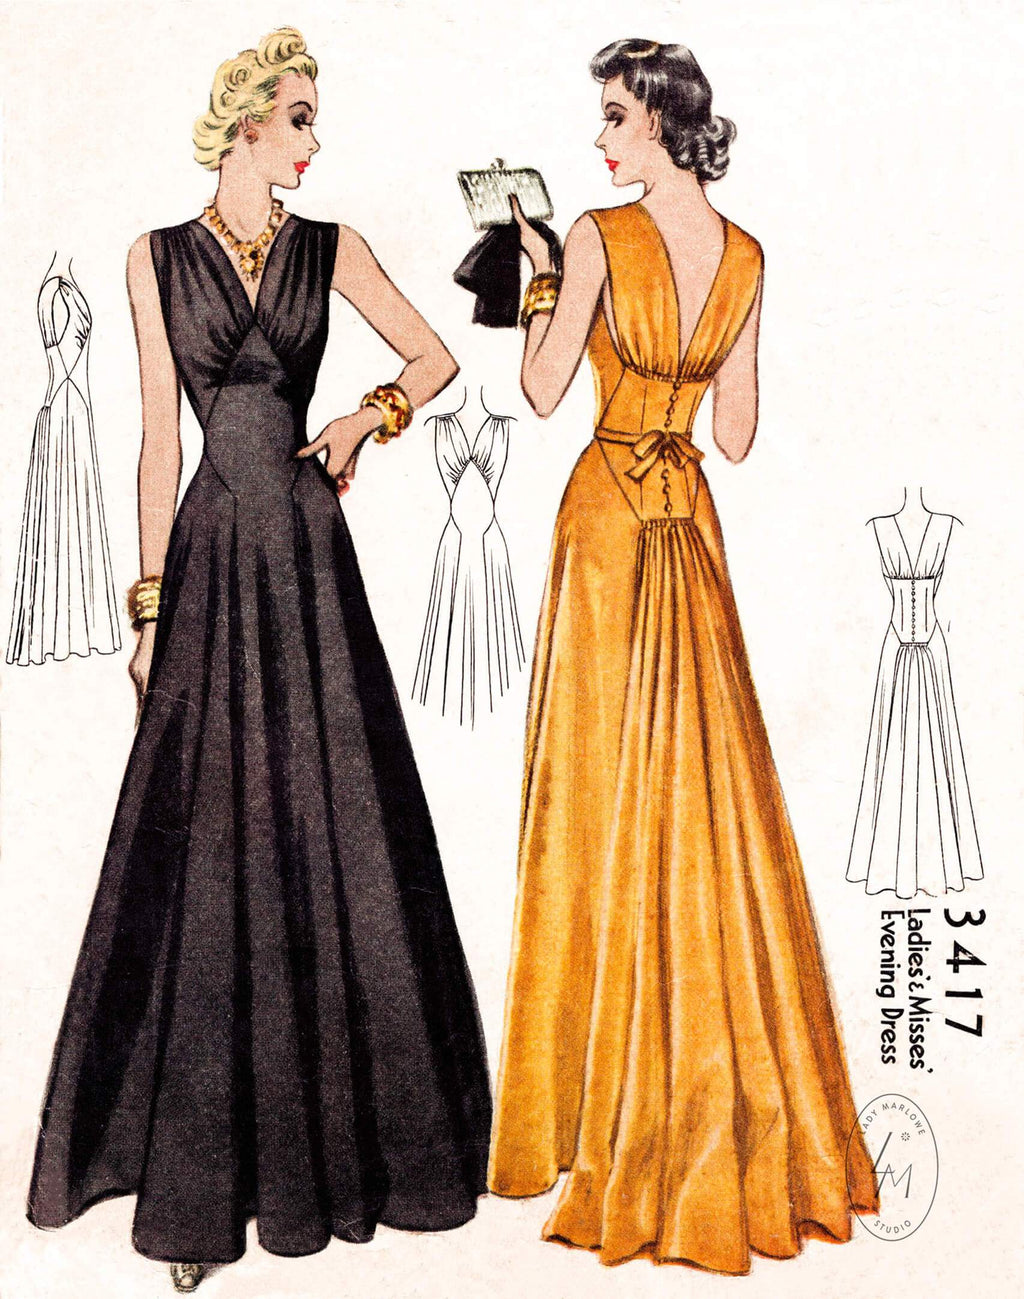 McCall 3417 1930s 1940s evening gown pattern vintage sewing pattern repro